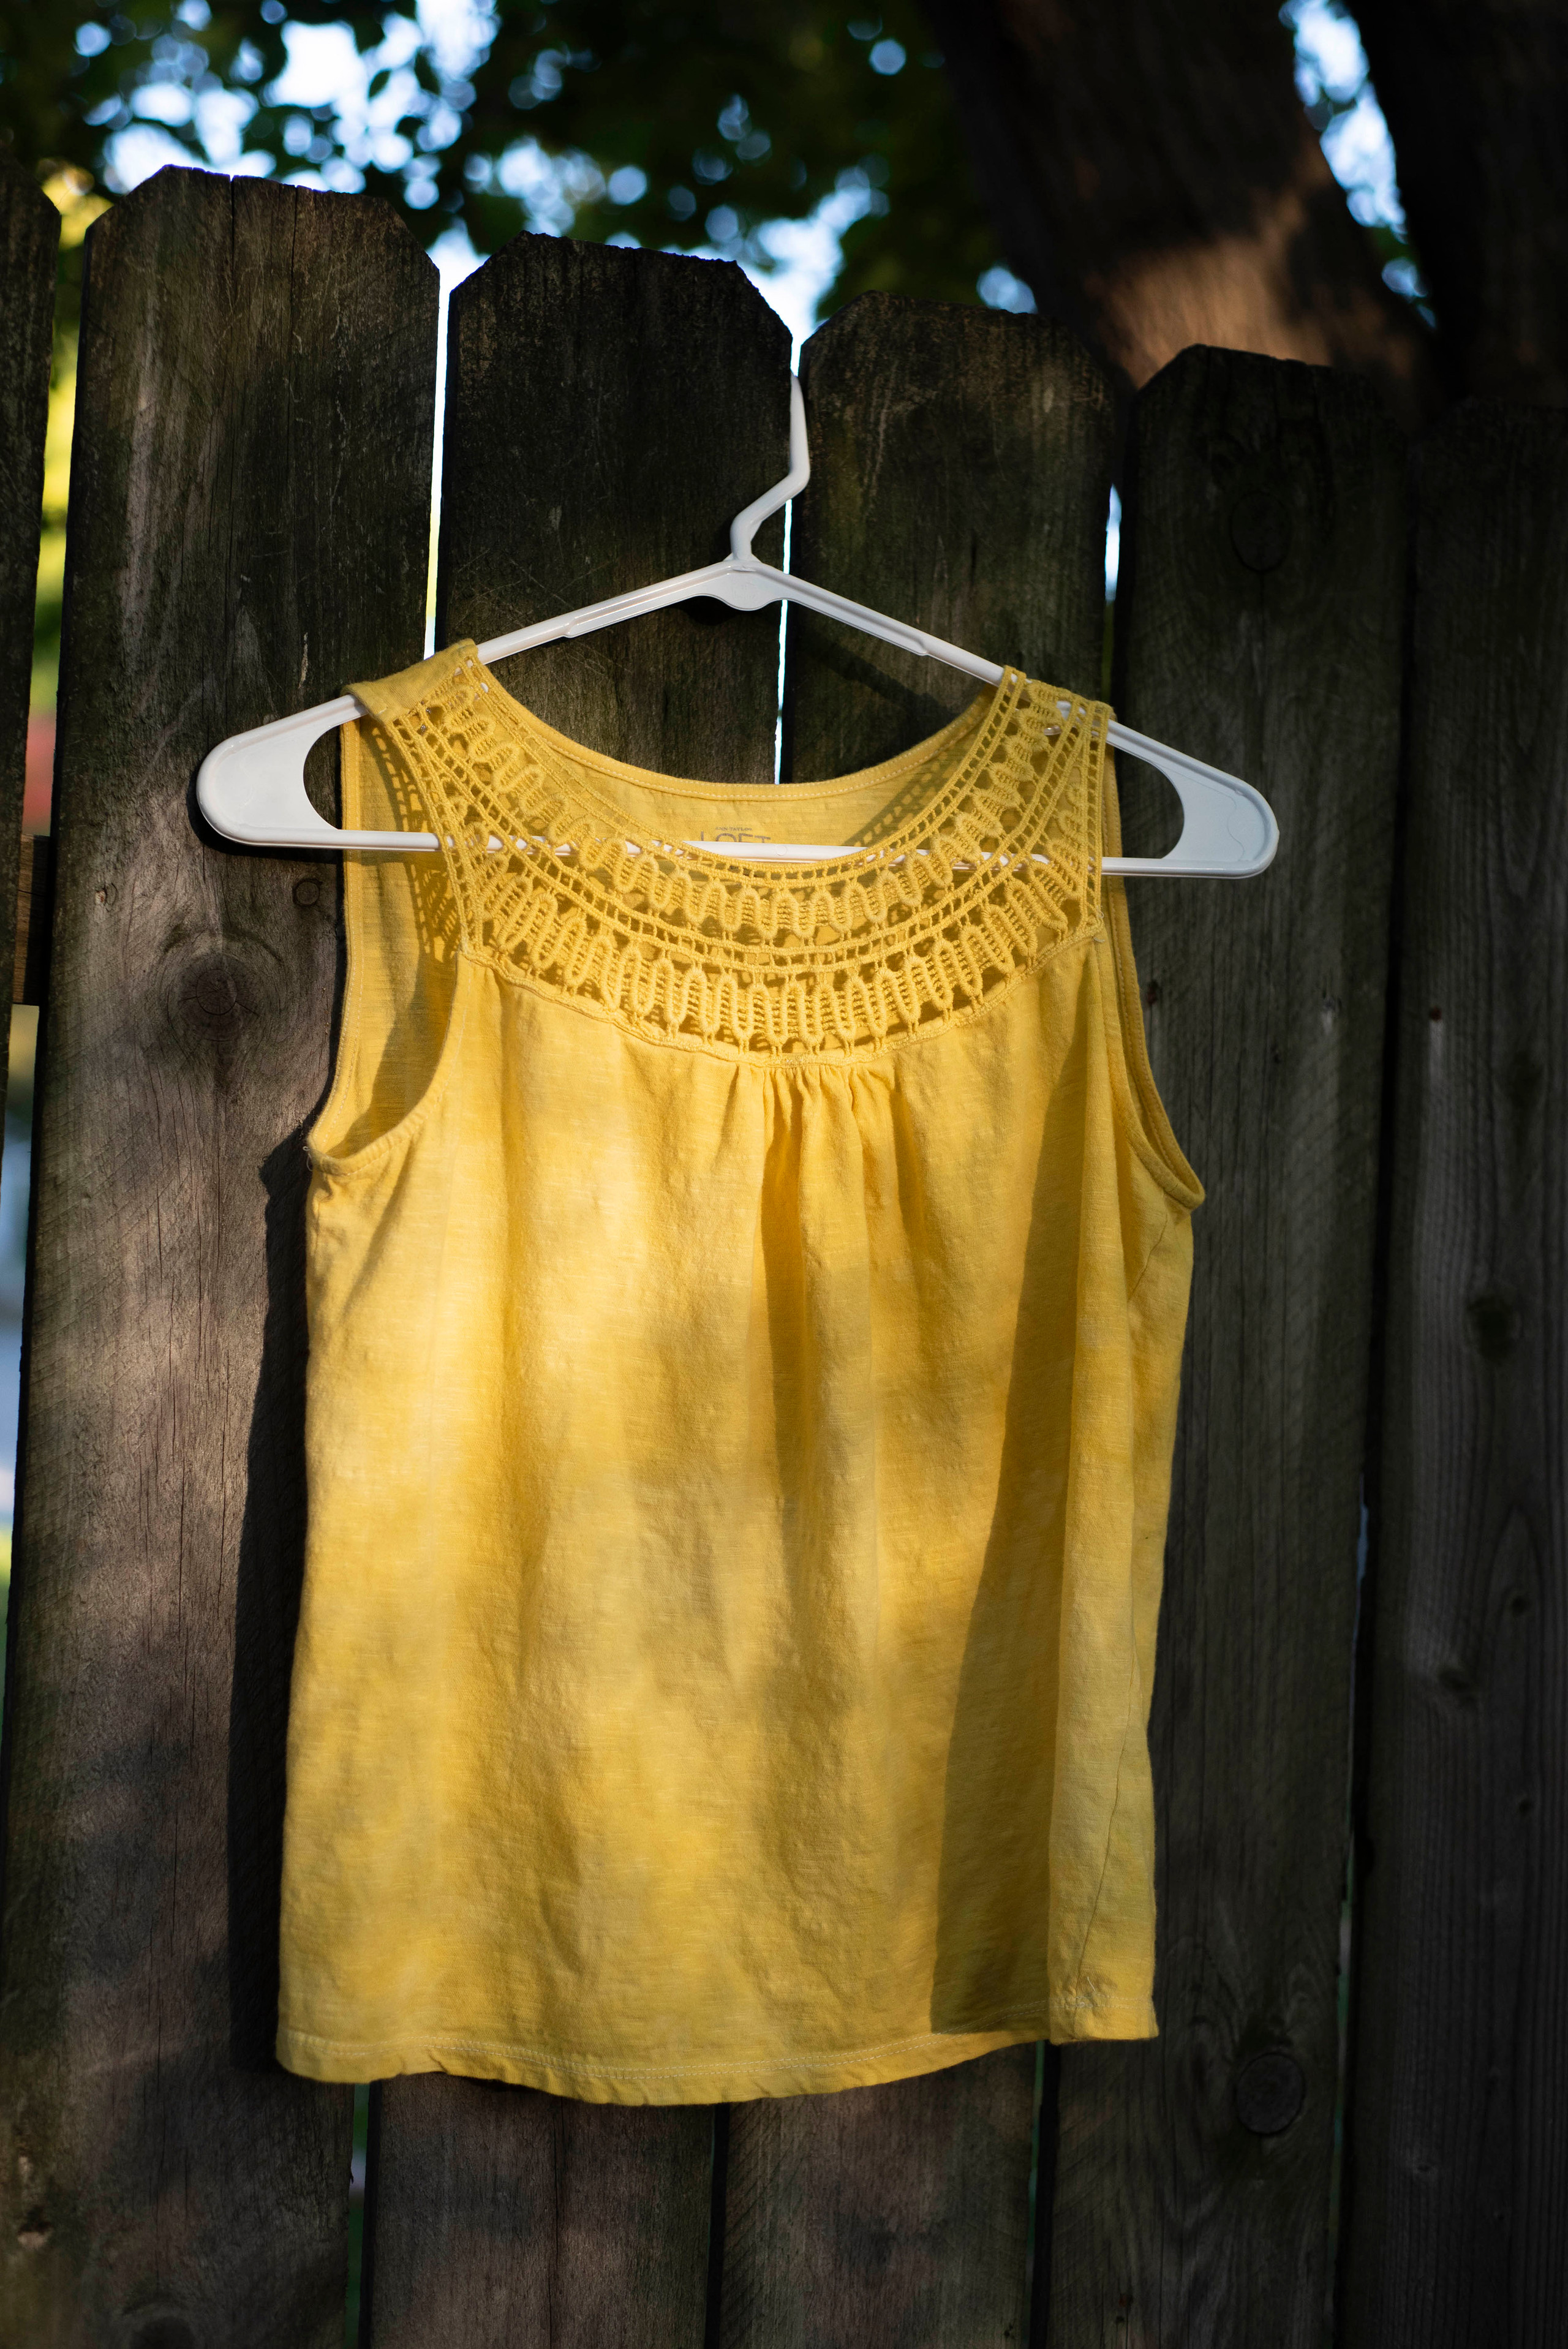 A yellow tank top with a lacy pattern around the top crew neck and straps.